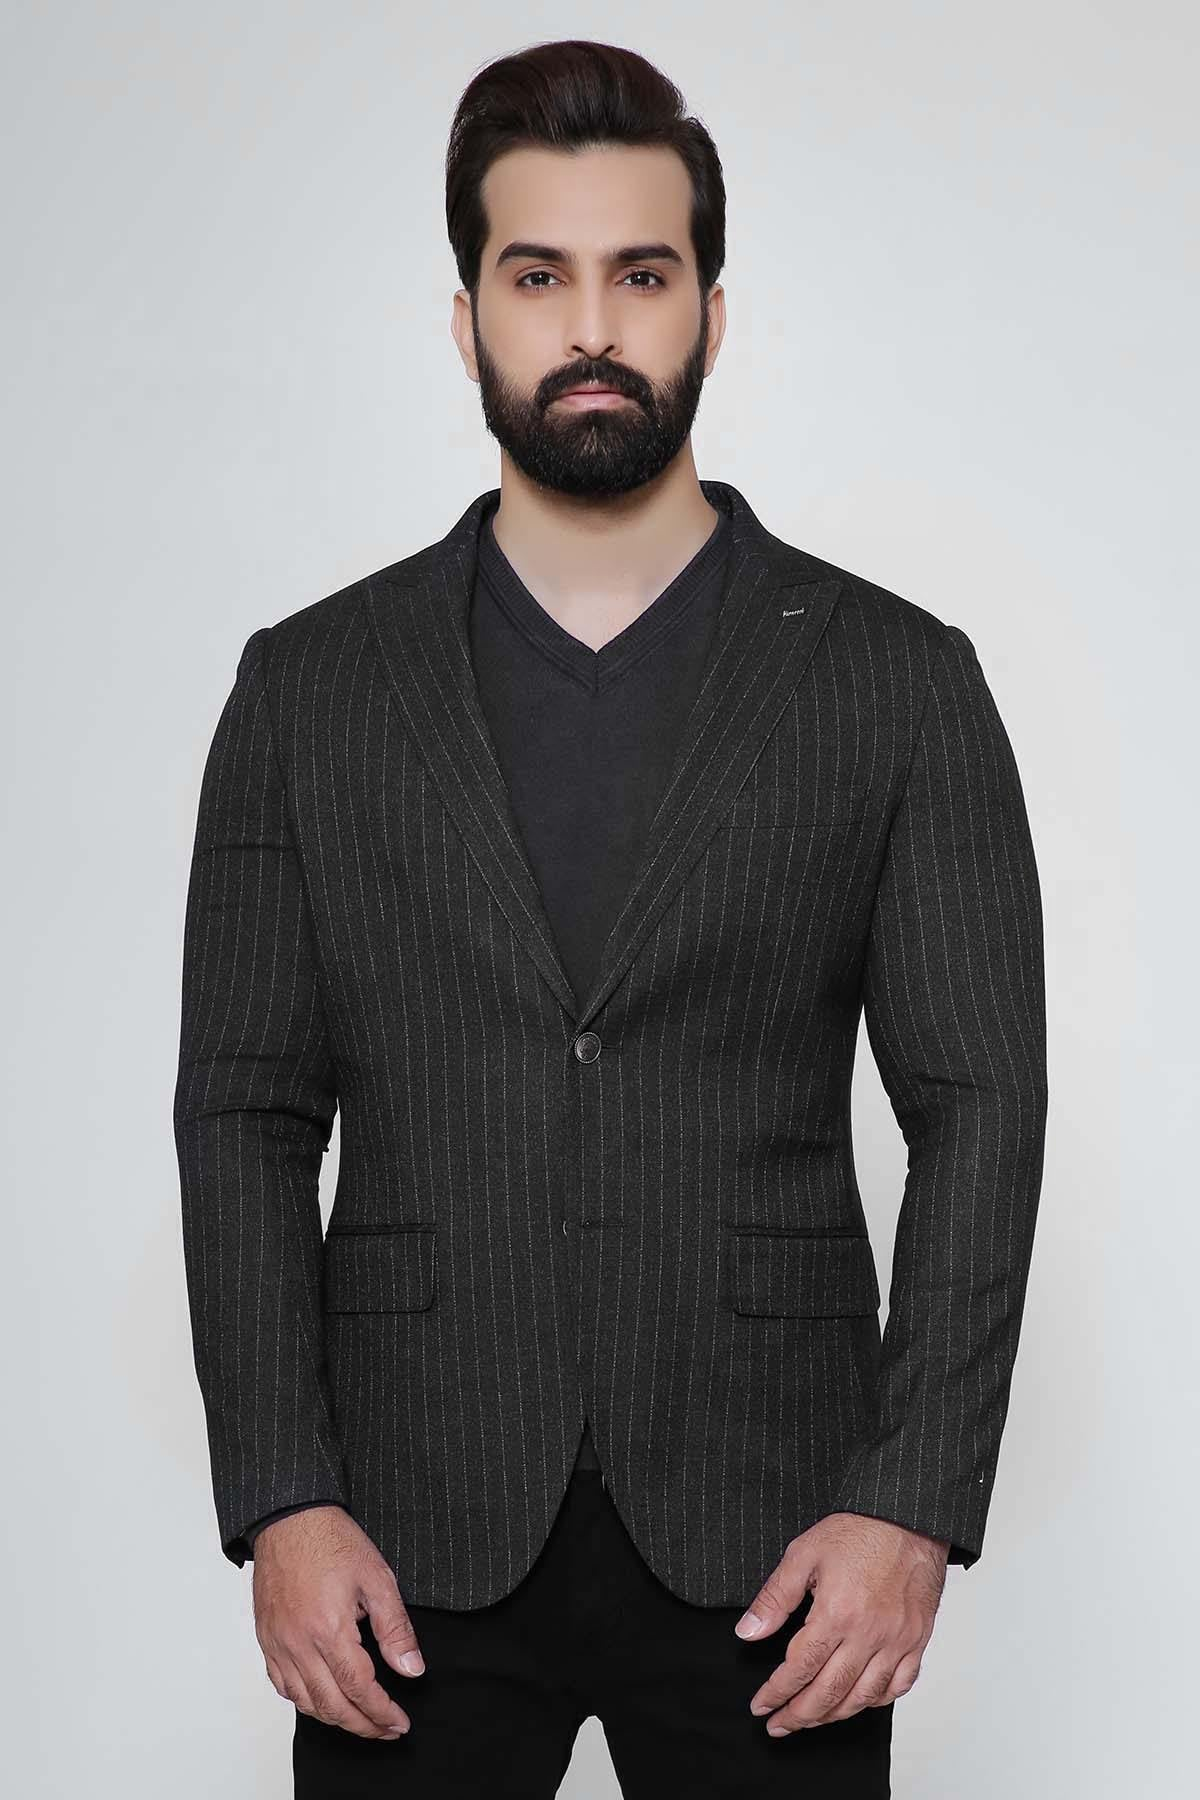 CASUAL COAT SLIM FIT CHARCOAL - Charcoal - Suiting